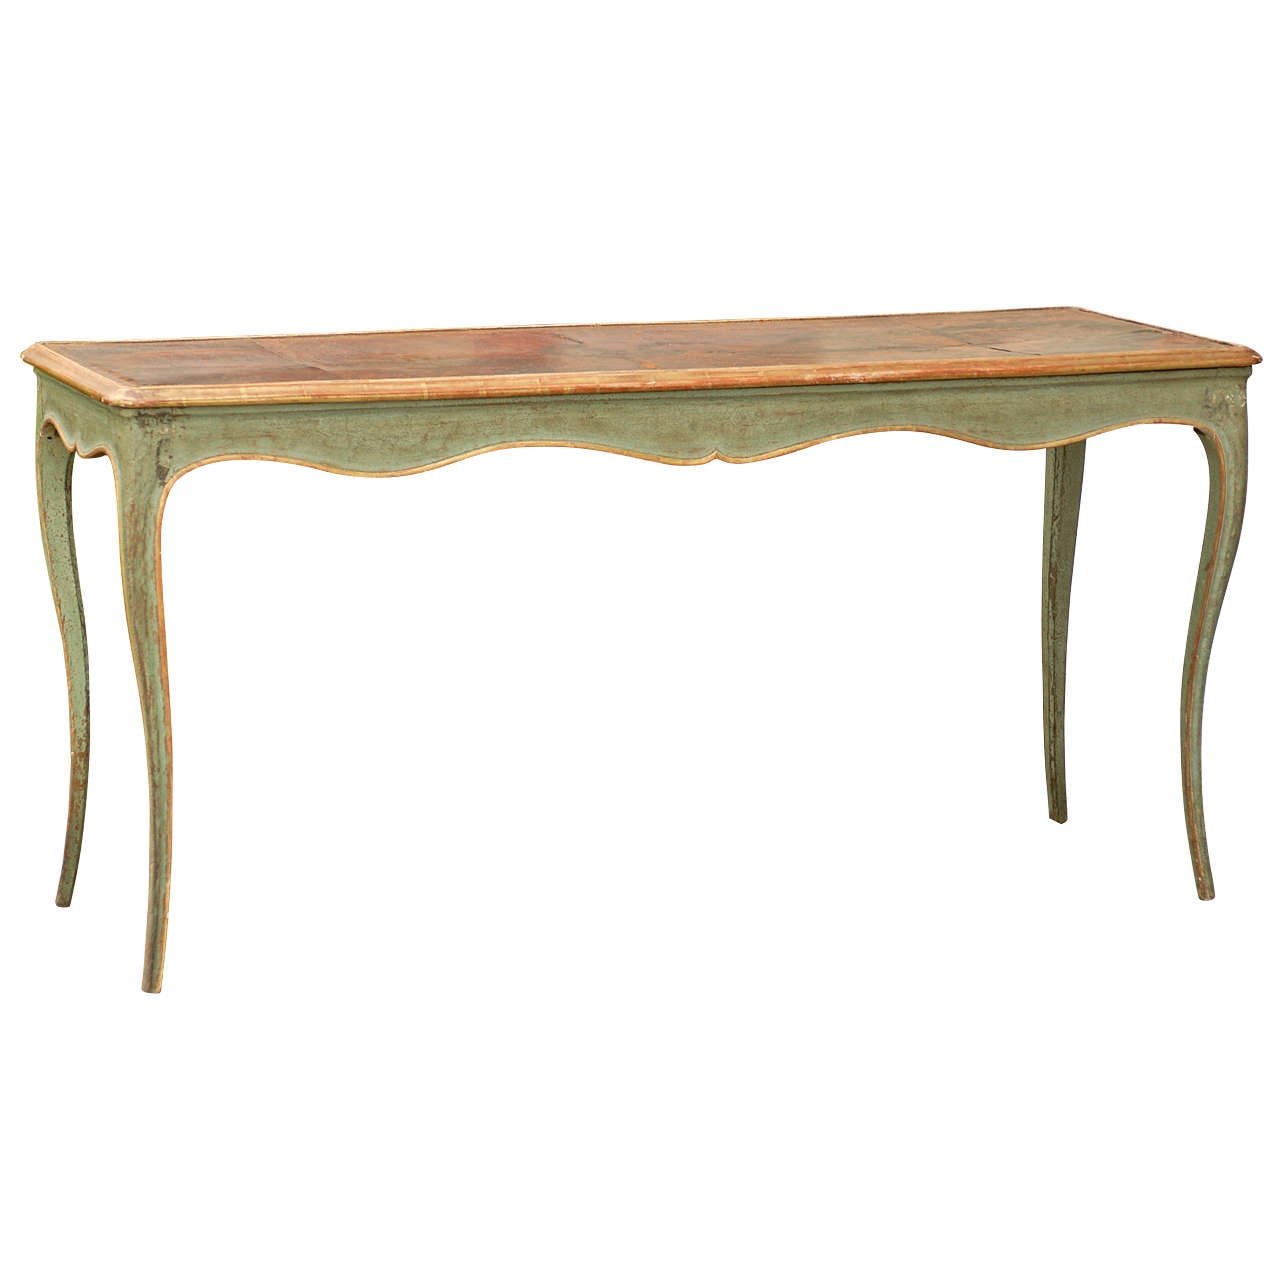 19thc Italian Painted Table With Aged Leather Top At 1stdibs